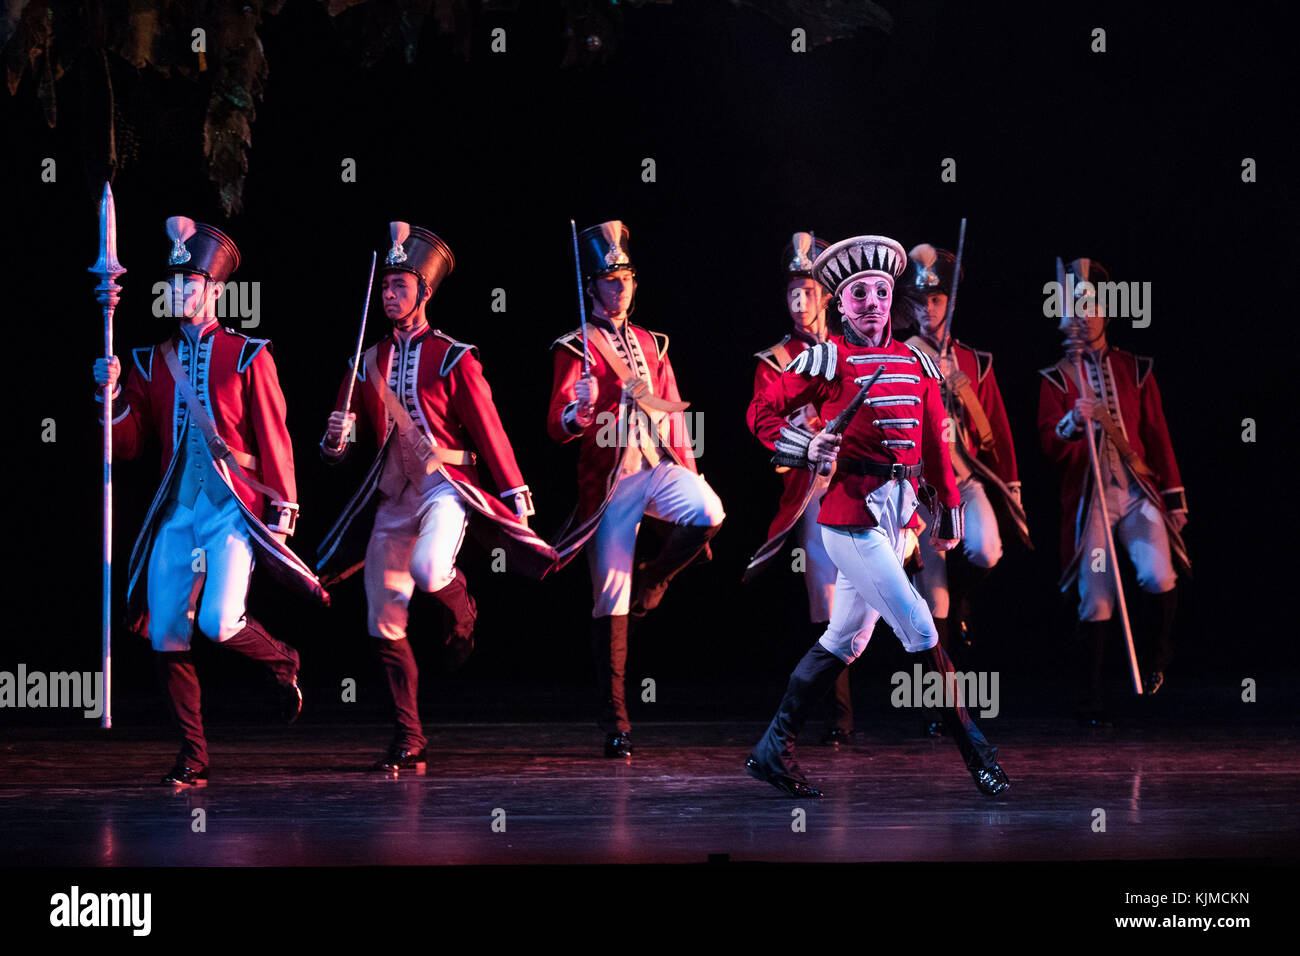 Dancers during a photocall for the Birmingham Royal Ballet's production of The Nutcracker at the Birmingham - Stock Image